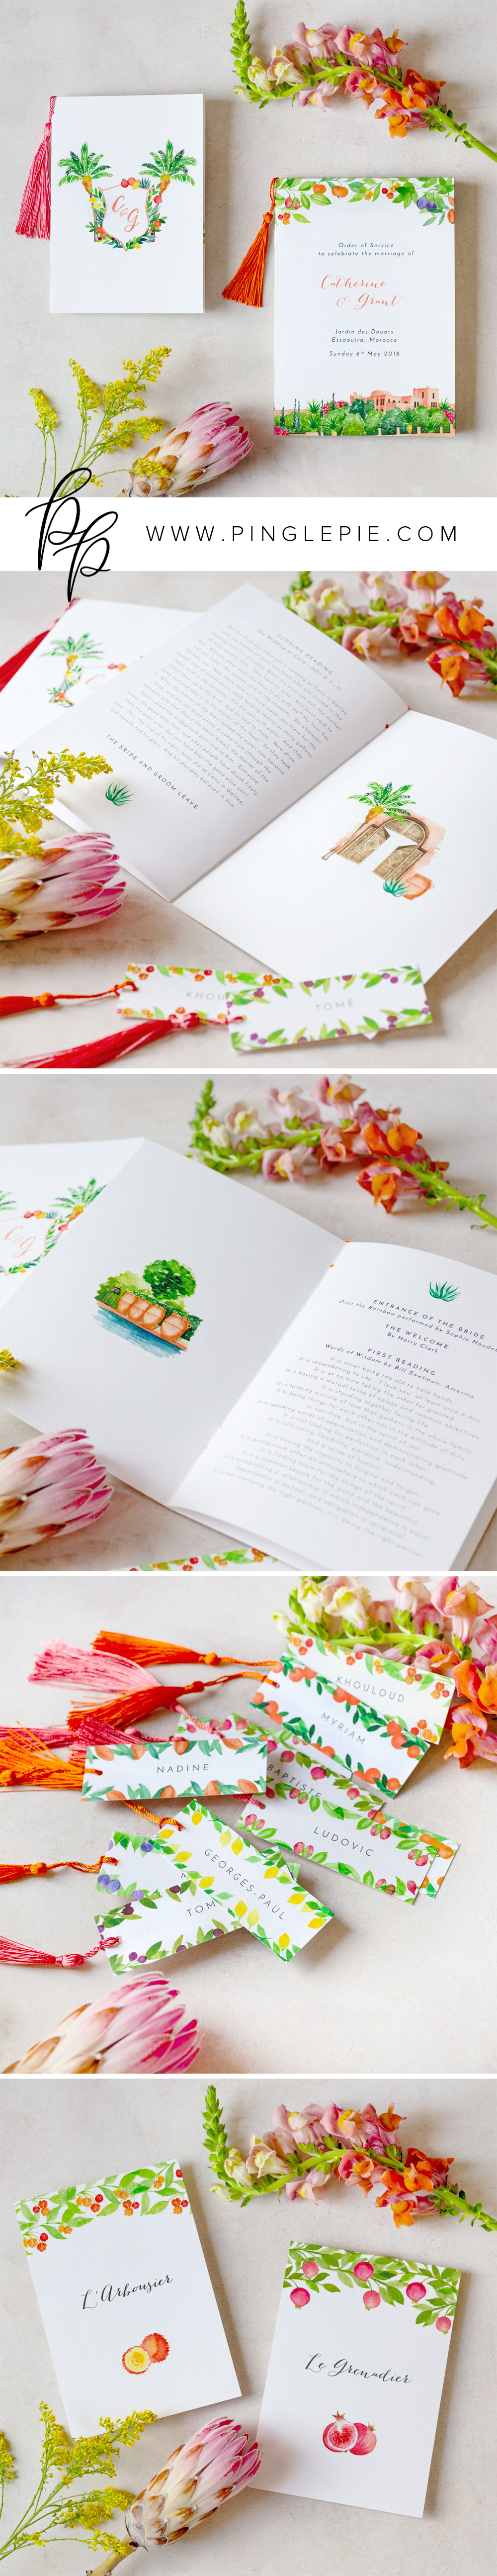 Bespoke Wedding Stationery - Bright Moroccan Design - Pingle Pie